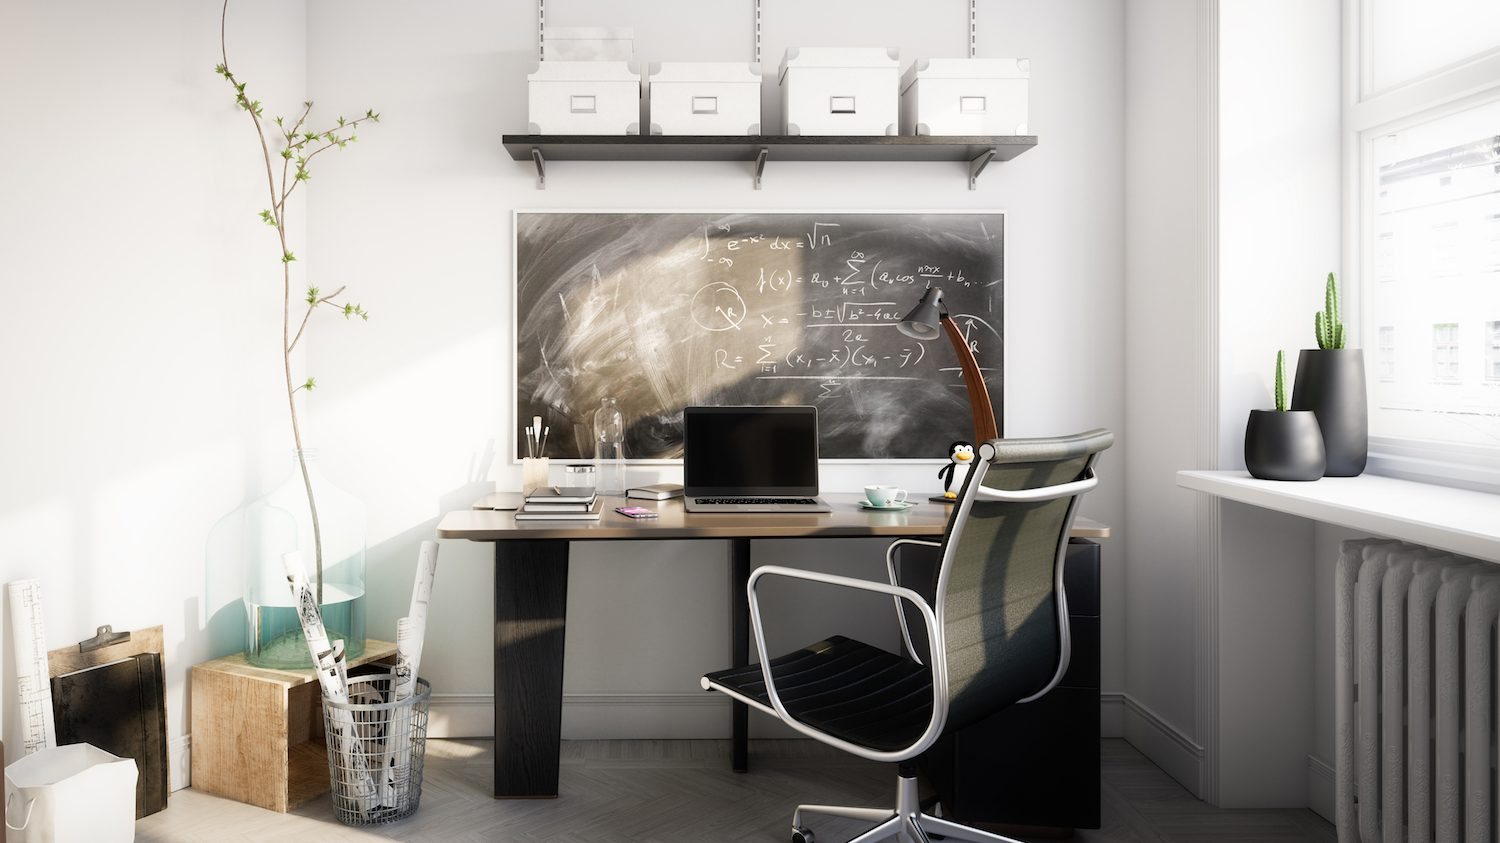 14 Of The Best Small Home Office Products To Increase Productivity